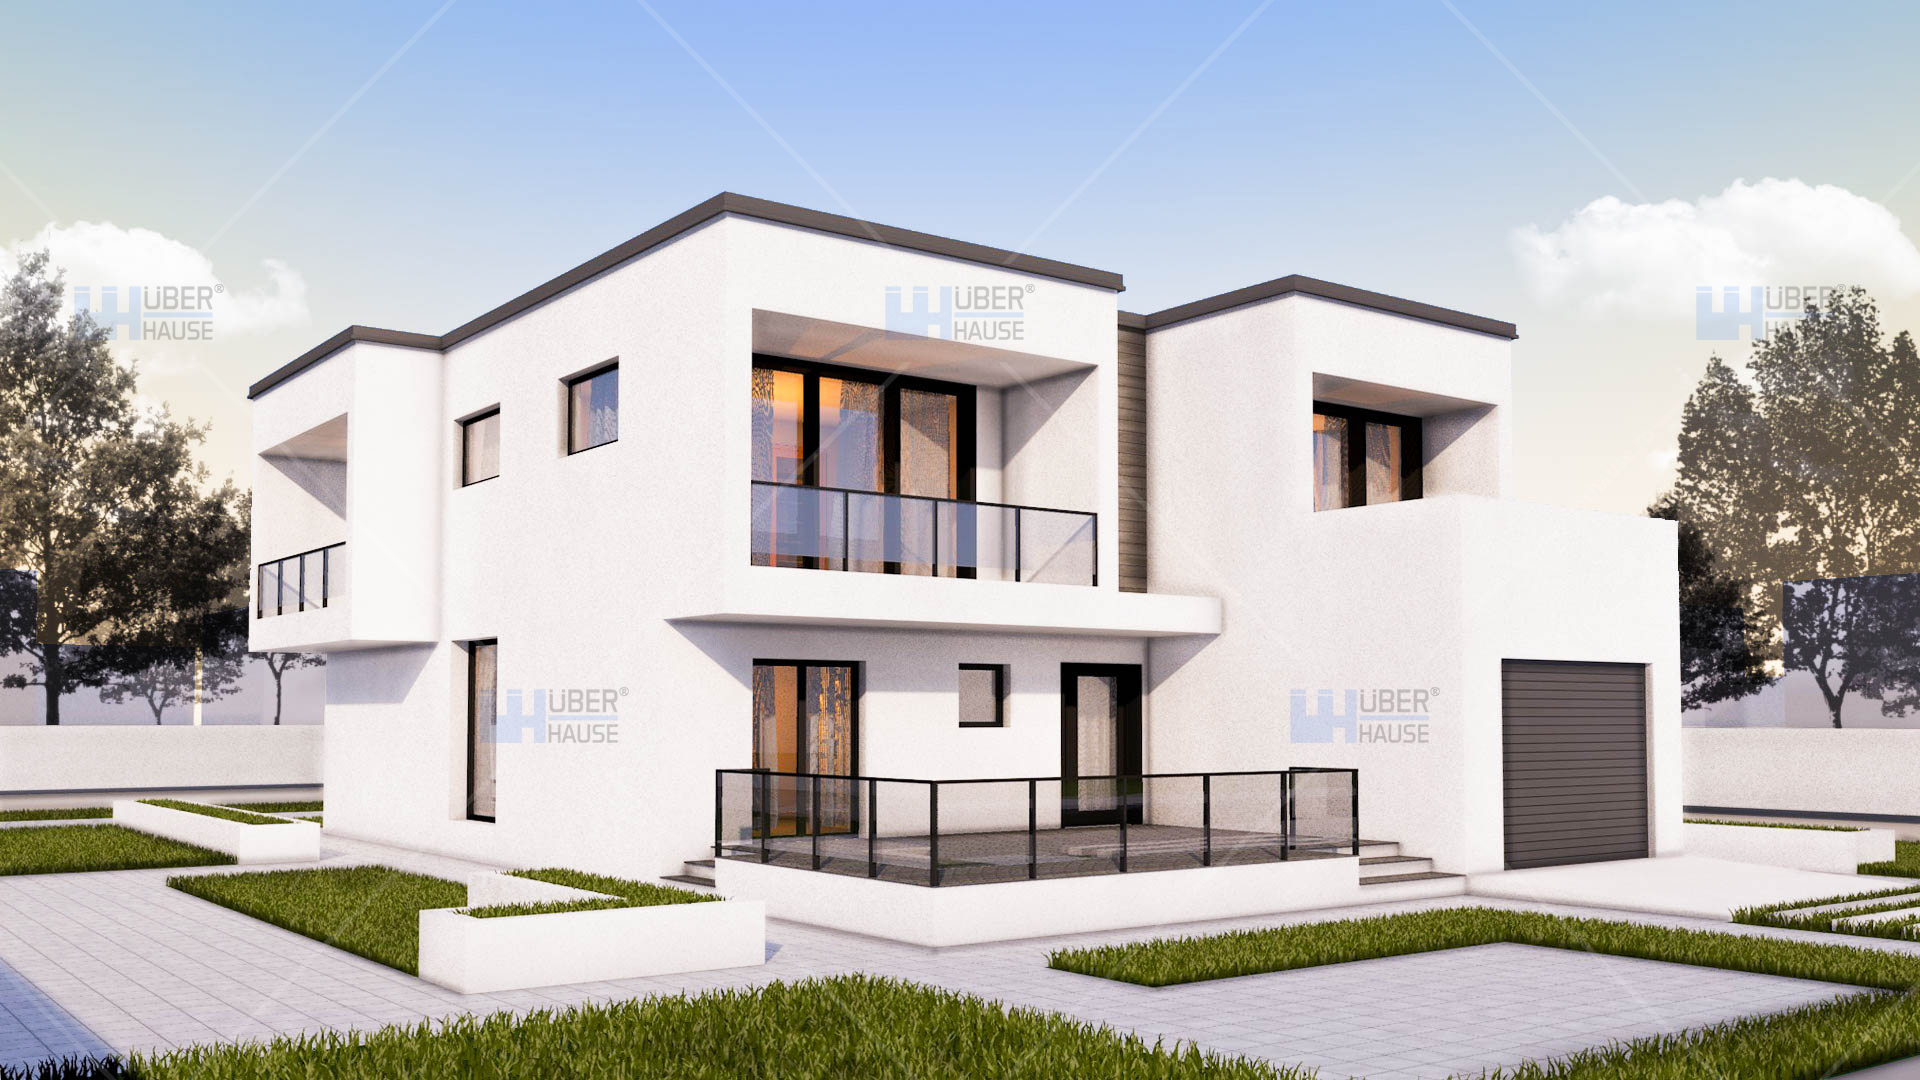 Dream Homes With 3 Bedrooms. Looking Gorgeous on One or Two Stories